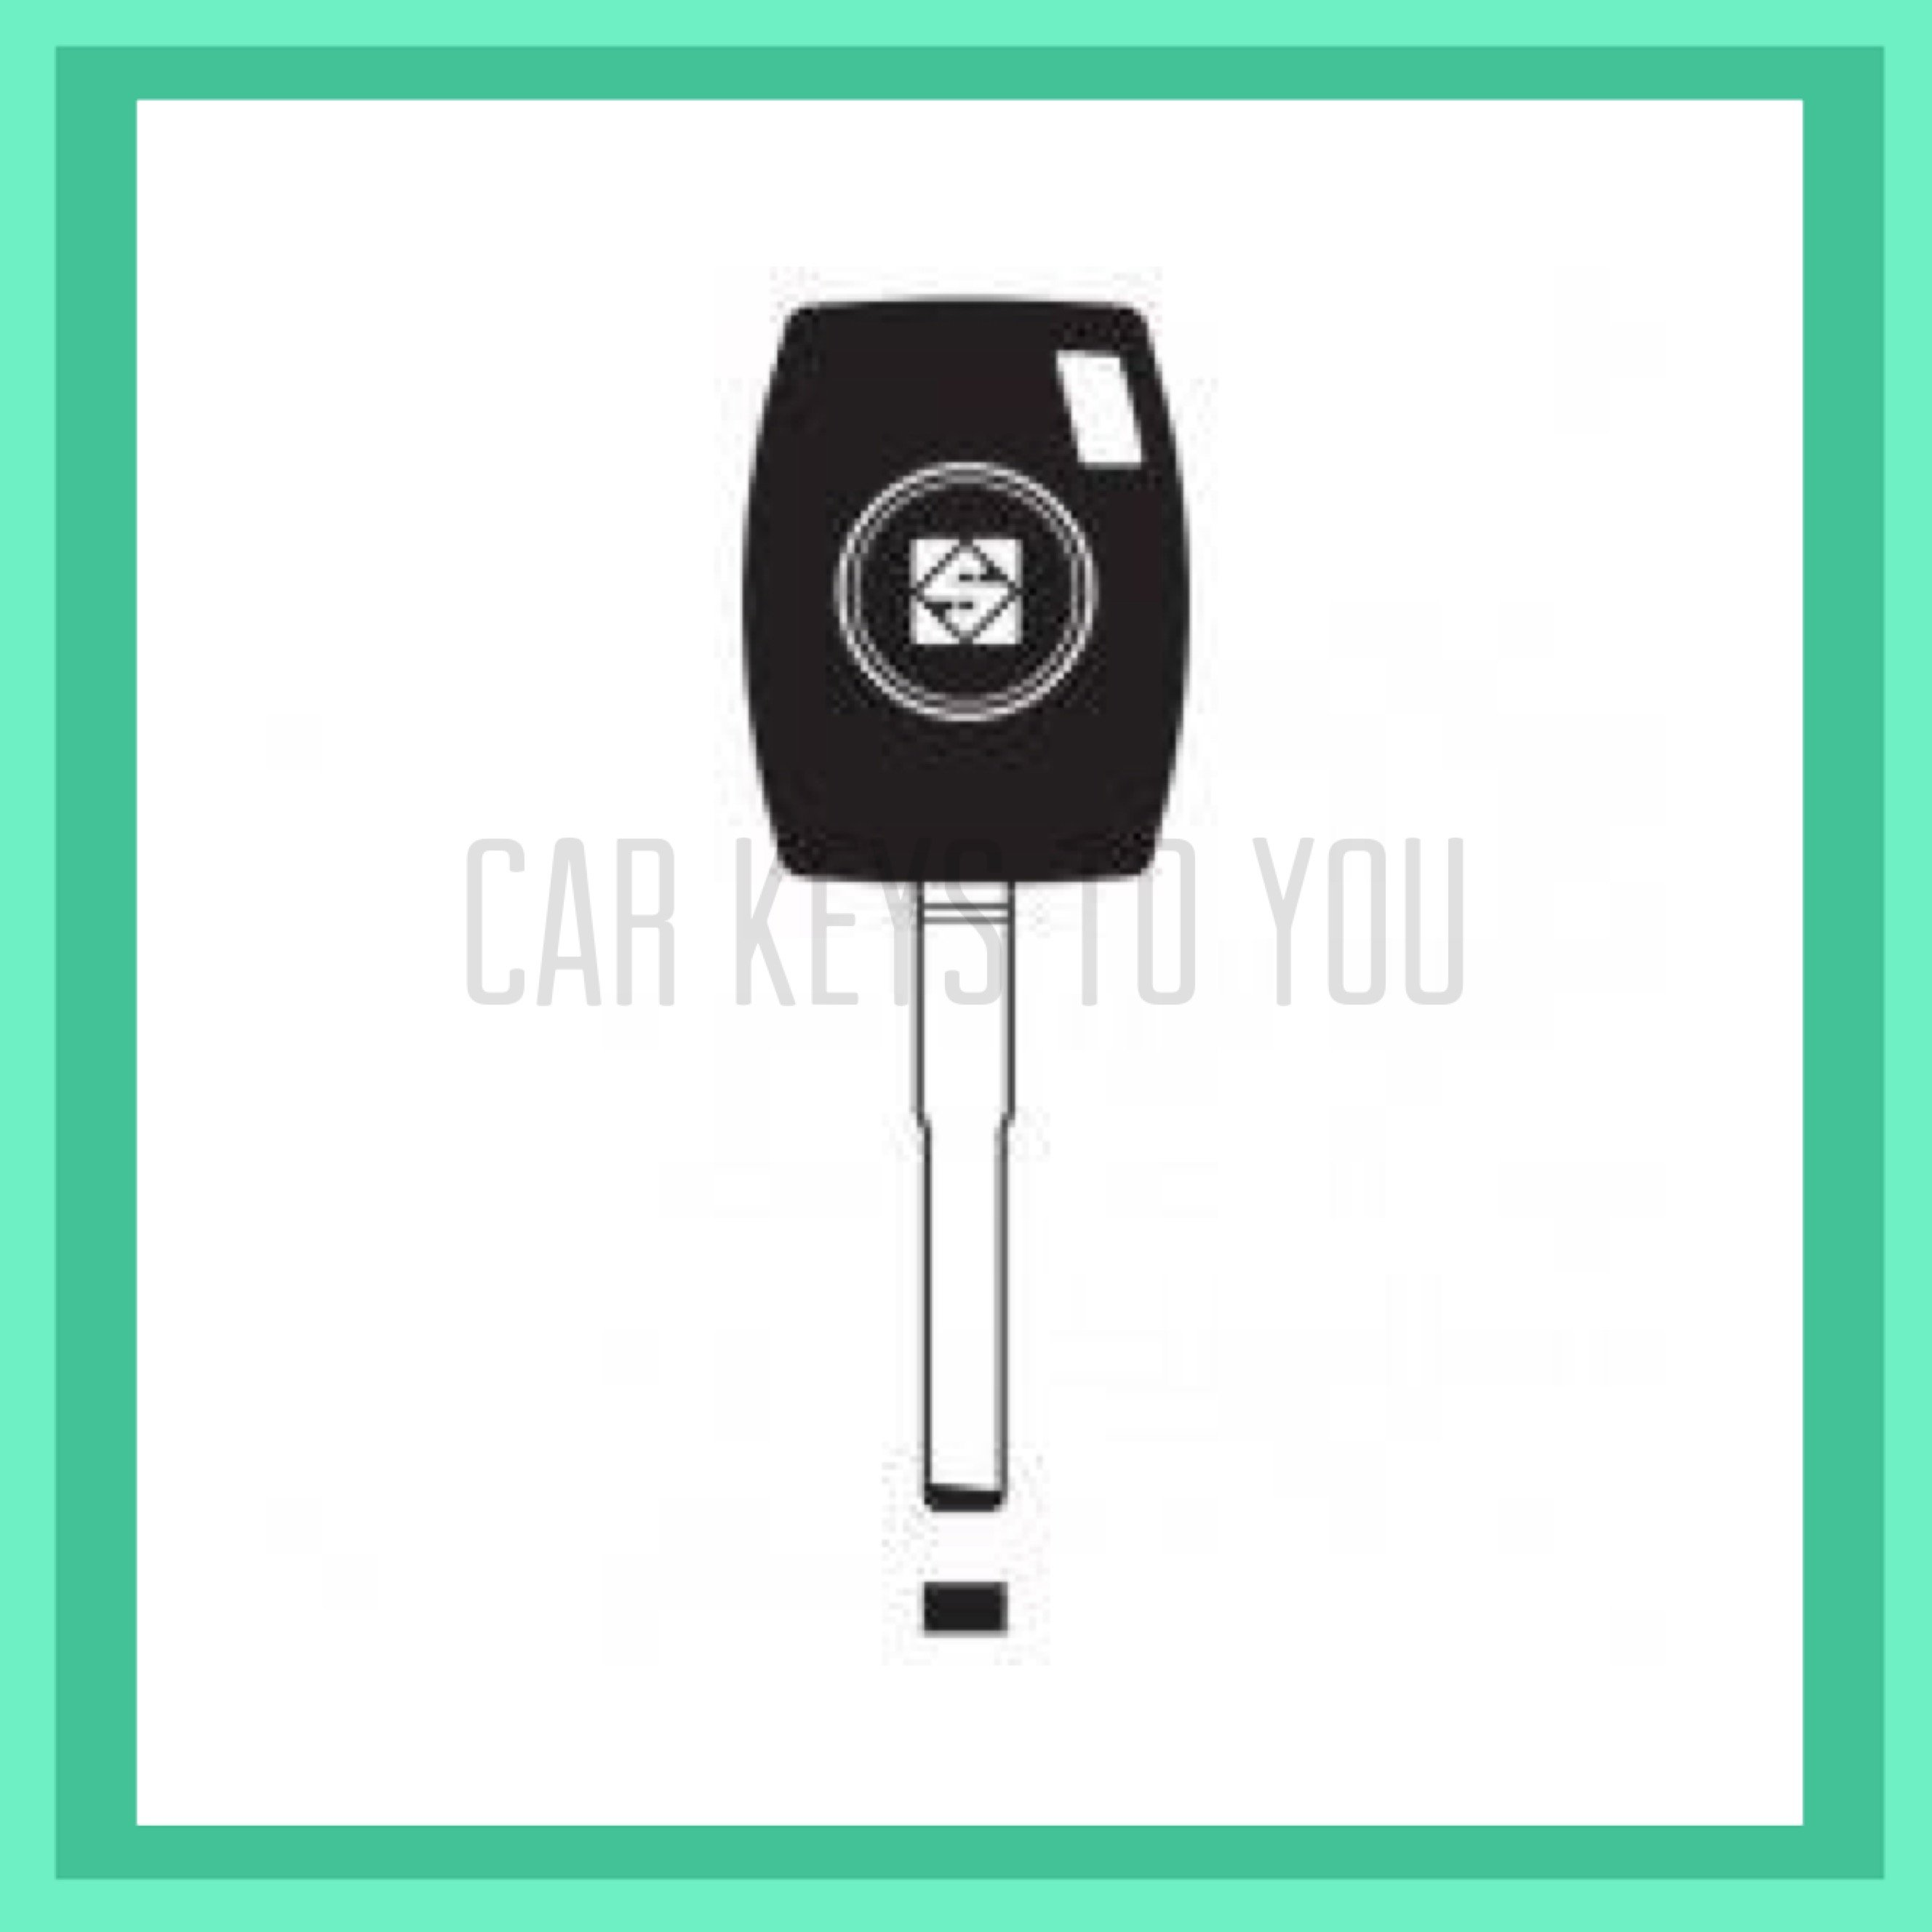 Ford Territory Car Key and Remote, Suit SY 2005-2011